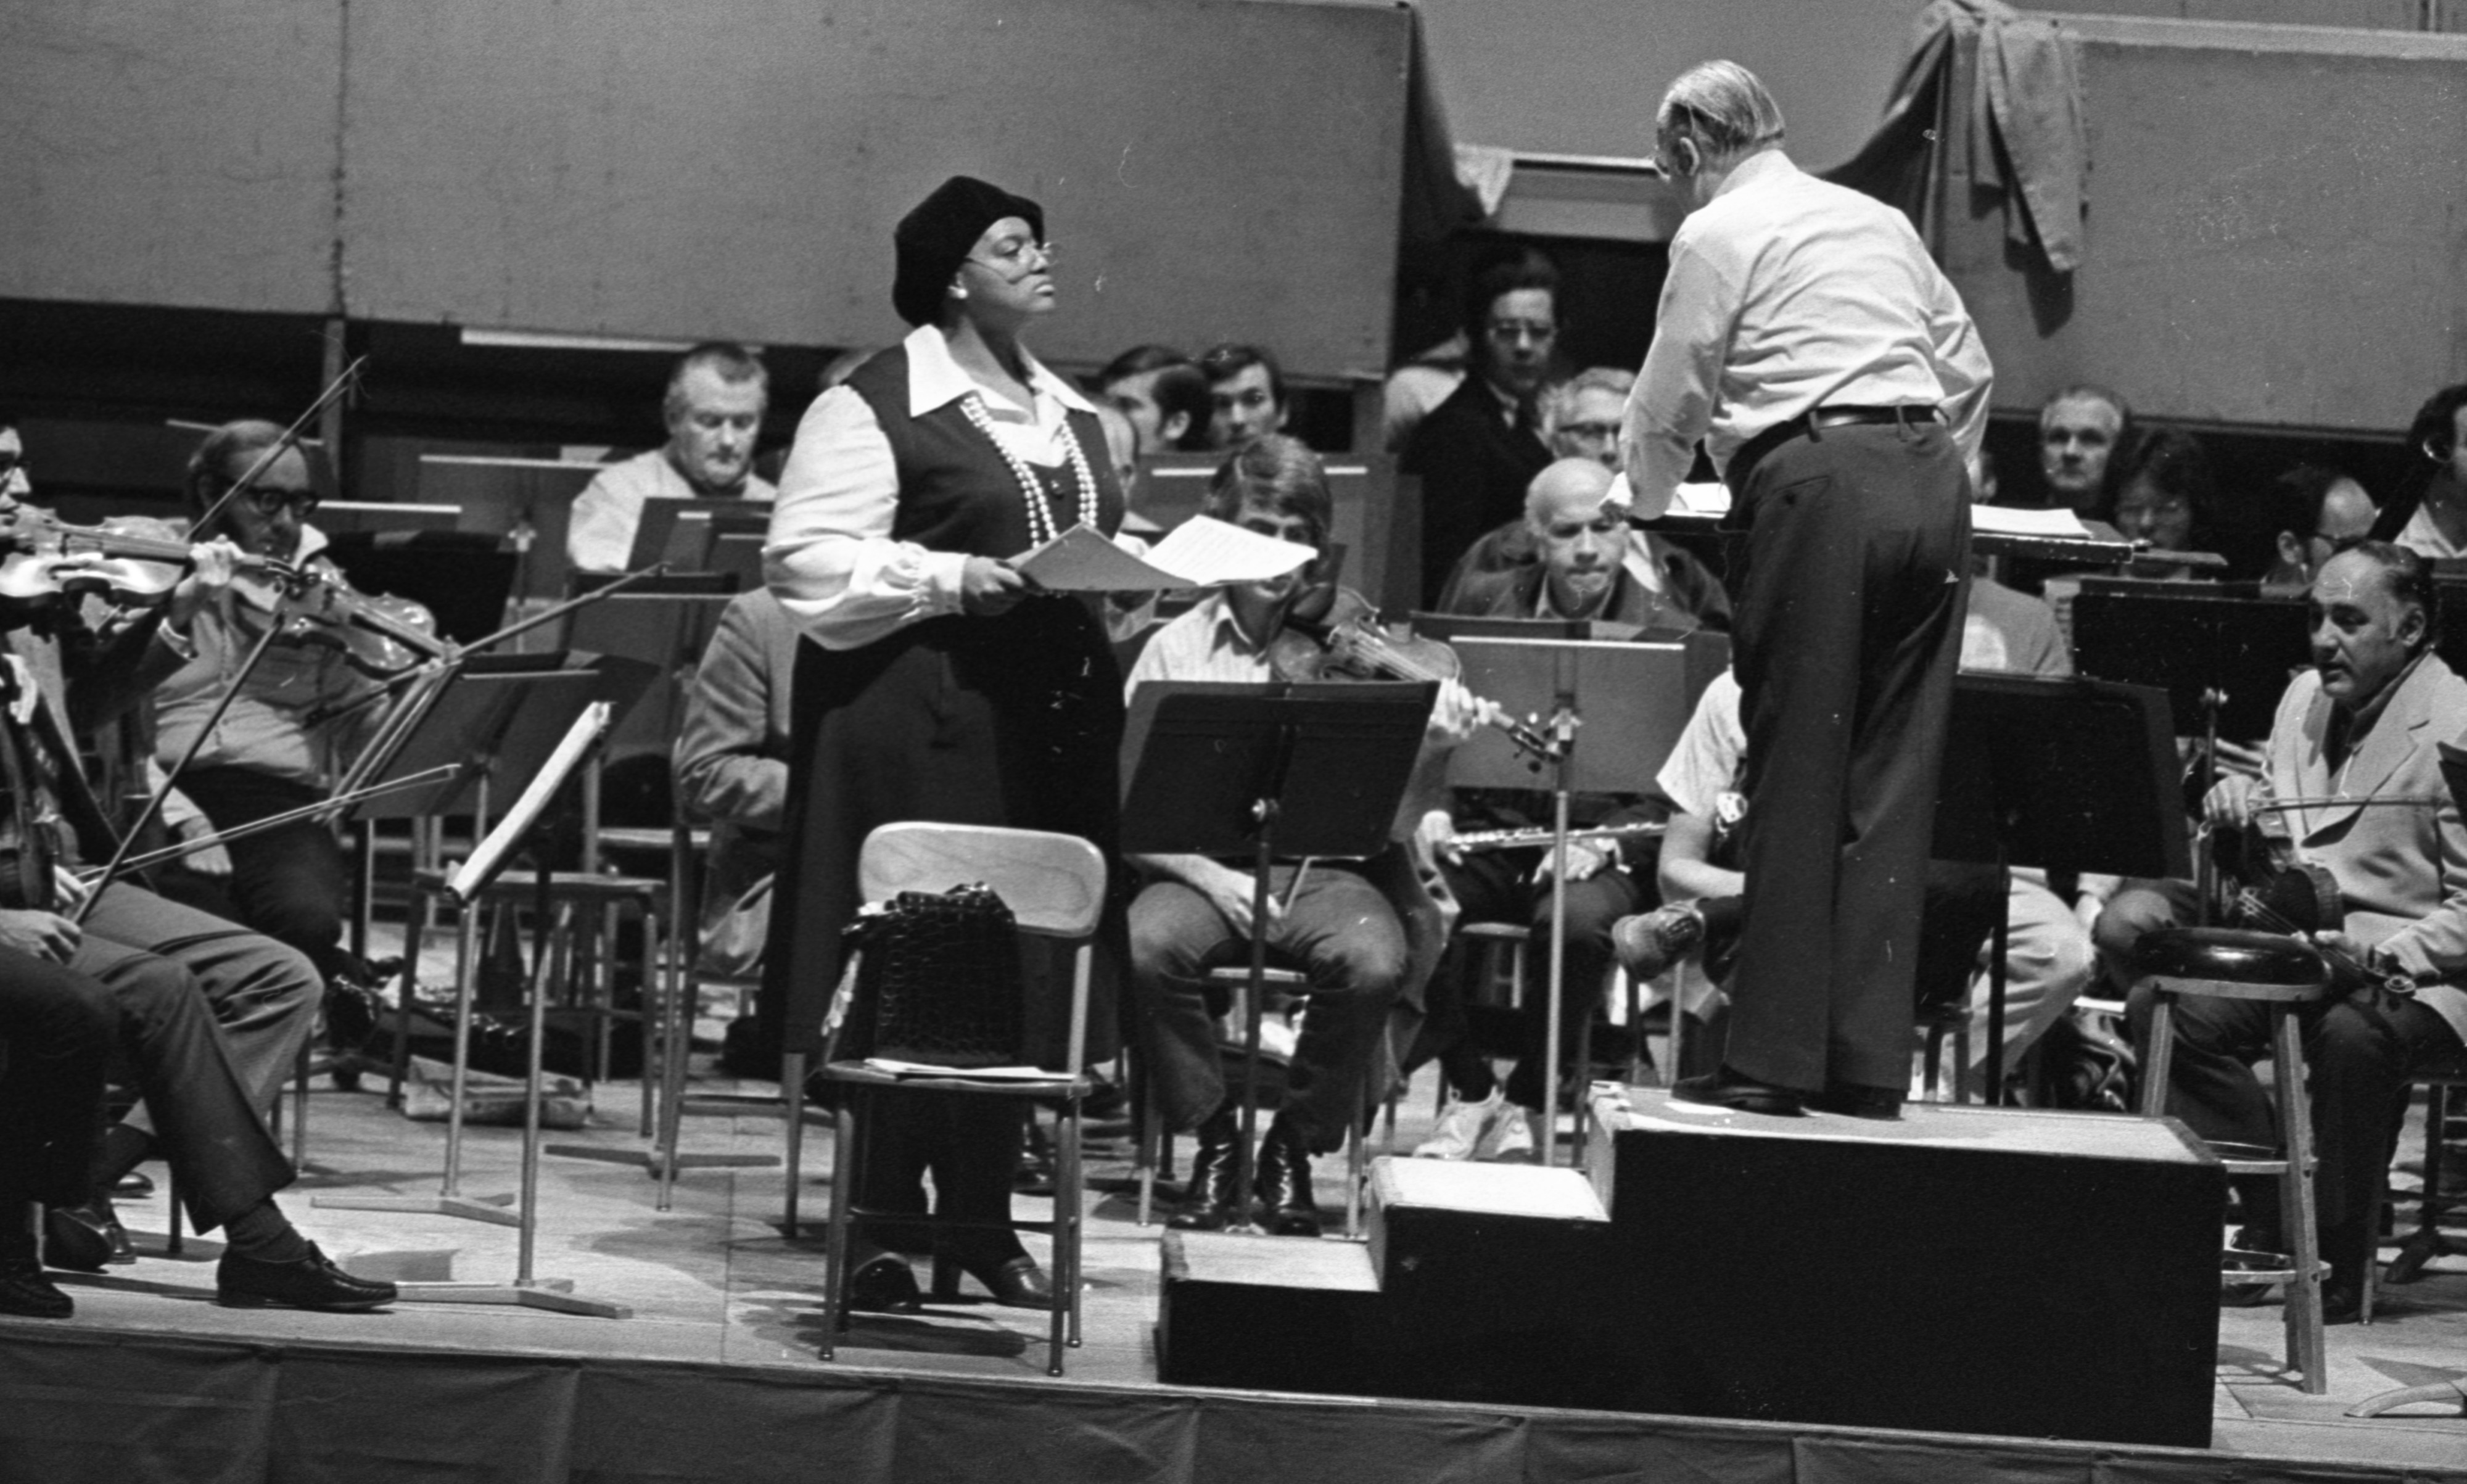 Jessye Norman Rehearses For May Festival With Thor Johnson And The Philadelphia Orchestra, May 1973 image